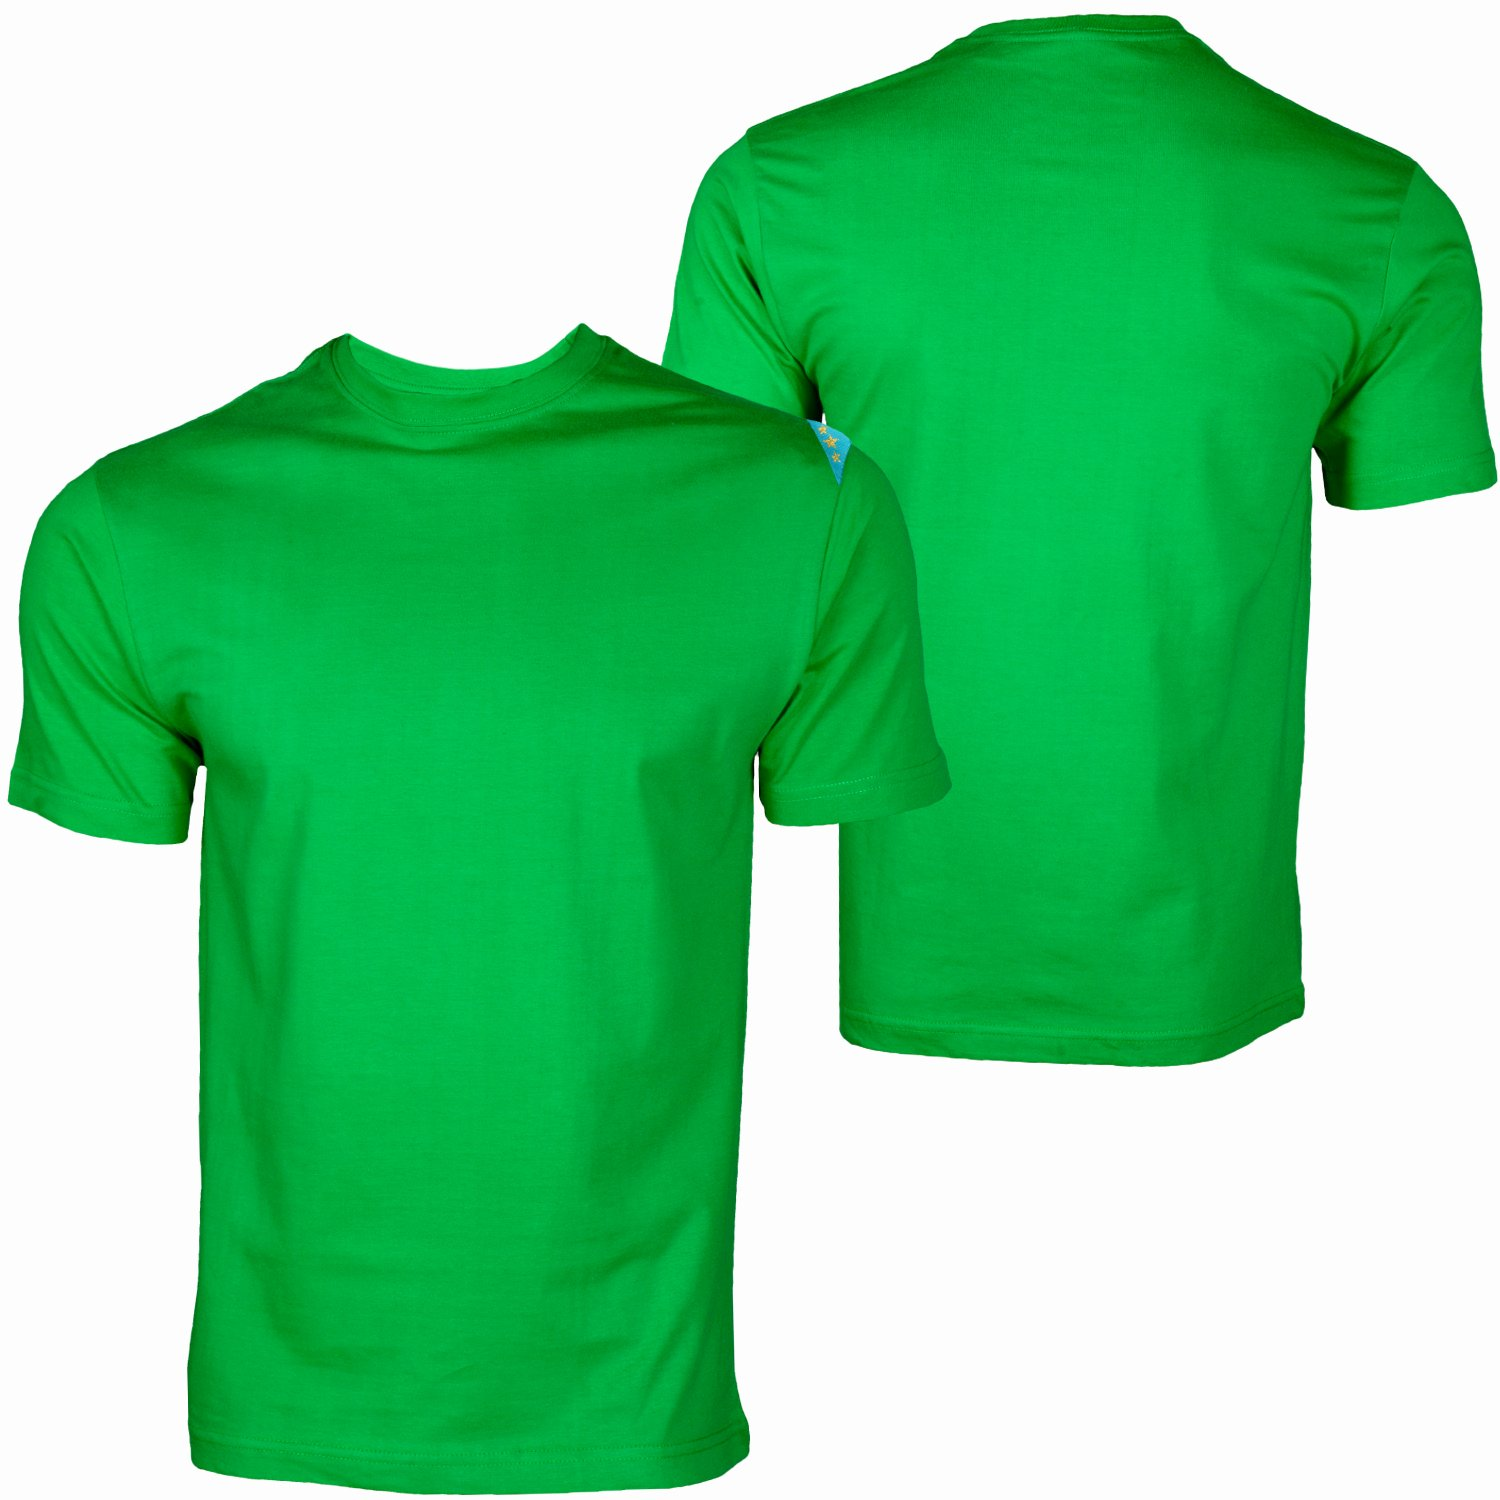 Green T Shirt Template Lovely Black Blank T Shirt Front and Back Clipart Best